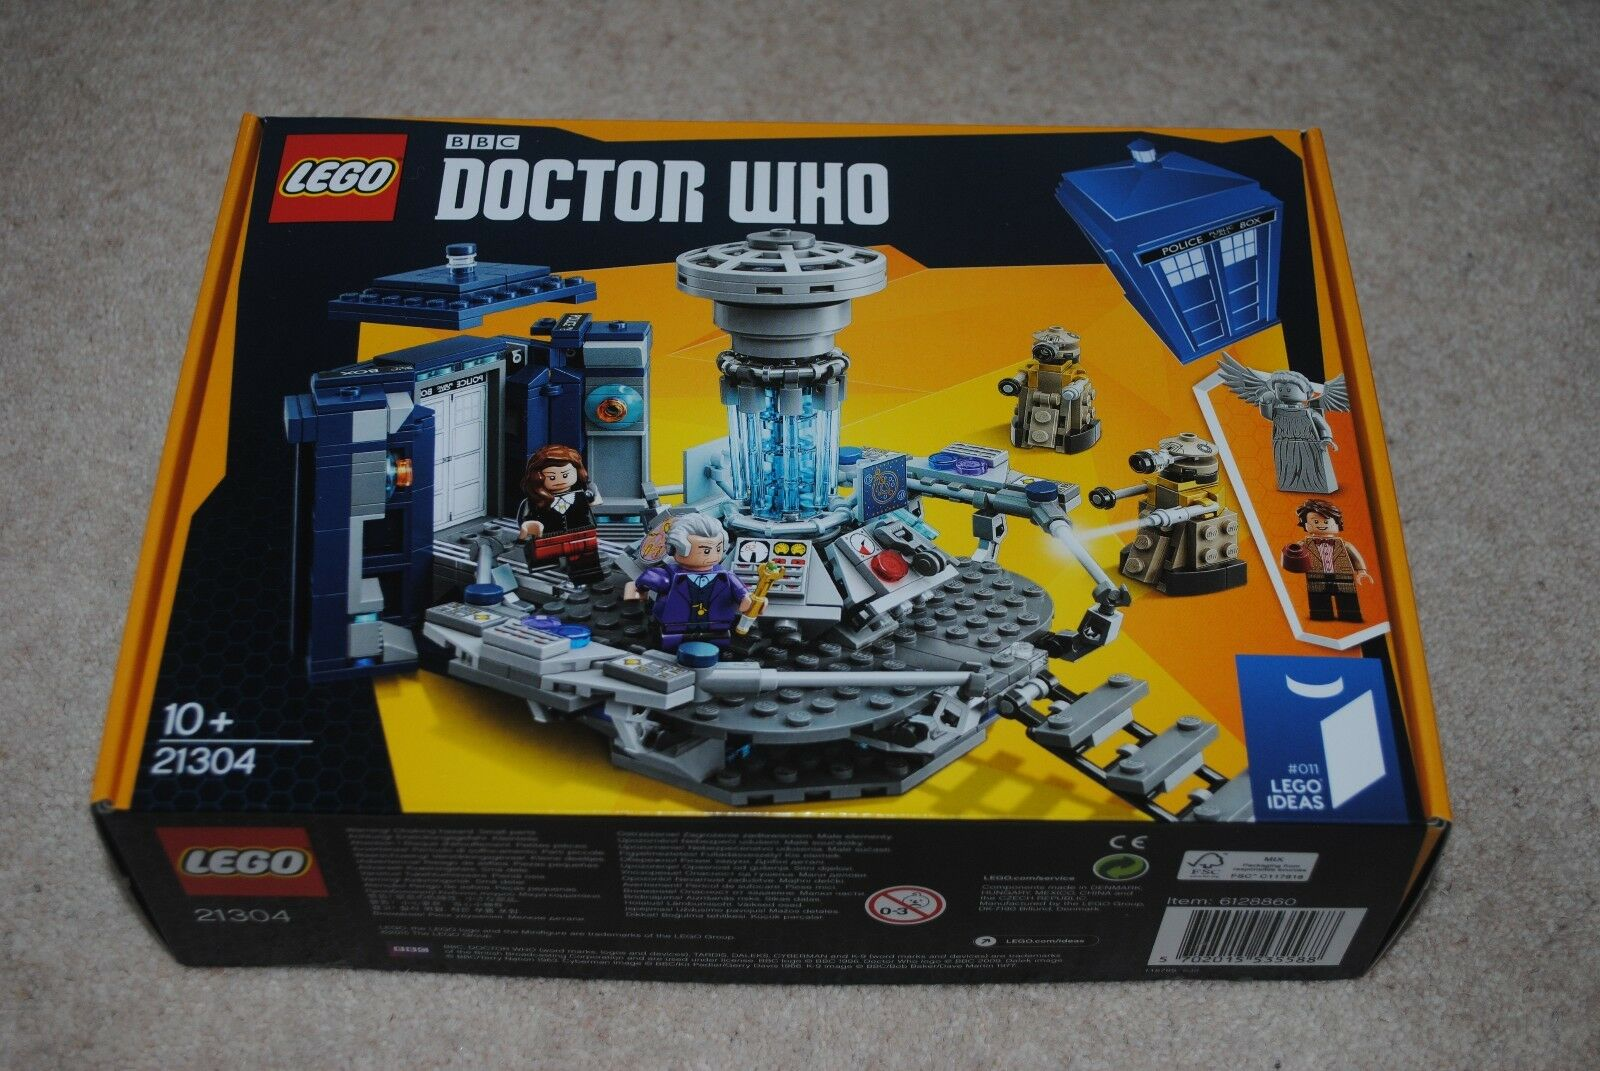 Lego Ideas Doctor Who 21304 RETIRED SEALED BRAND NEW SEALED BOX